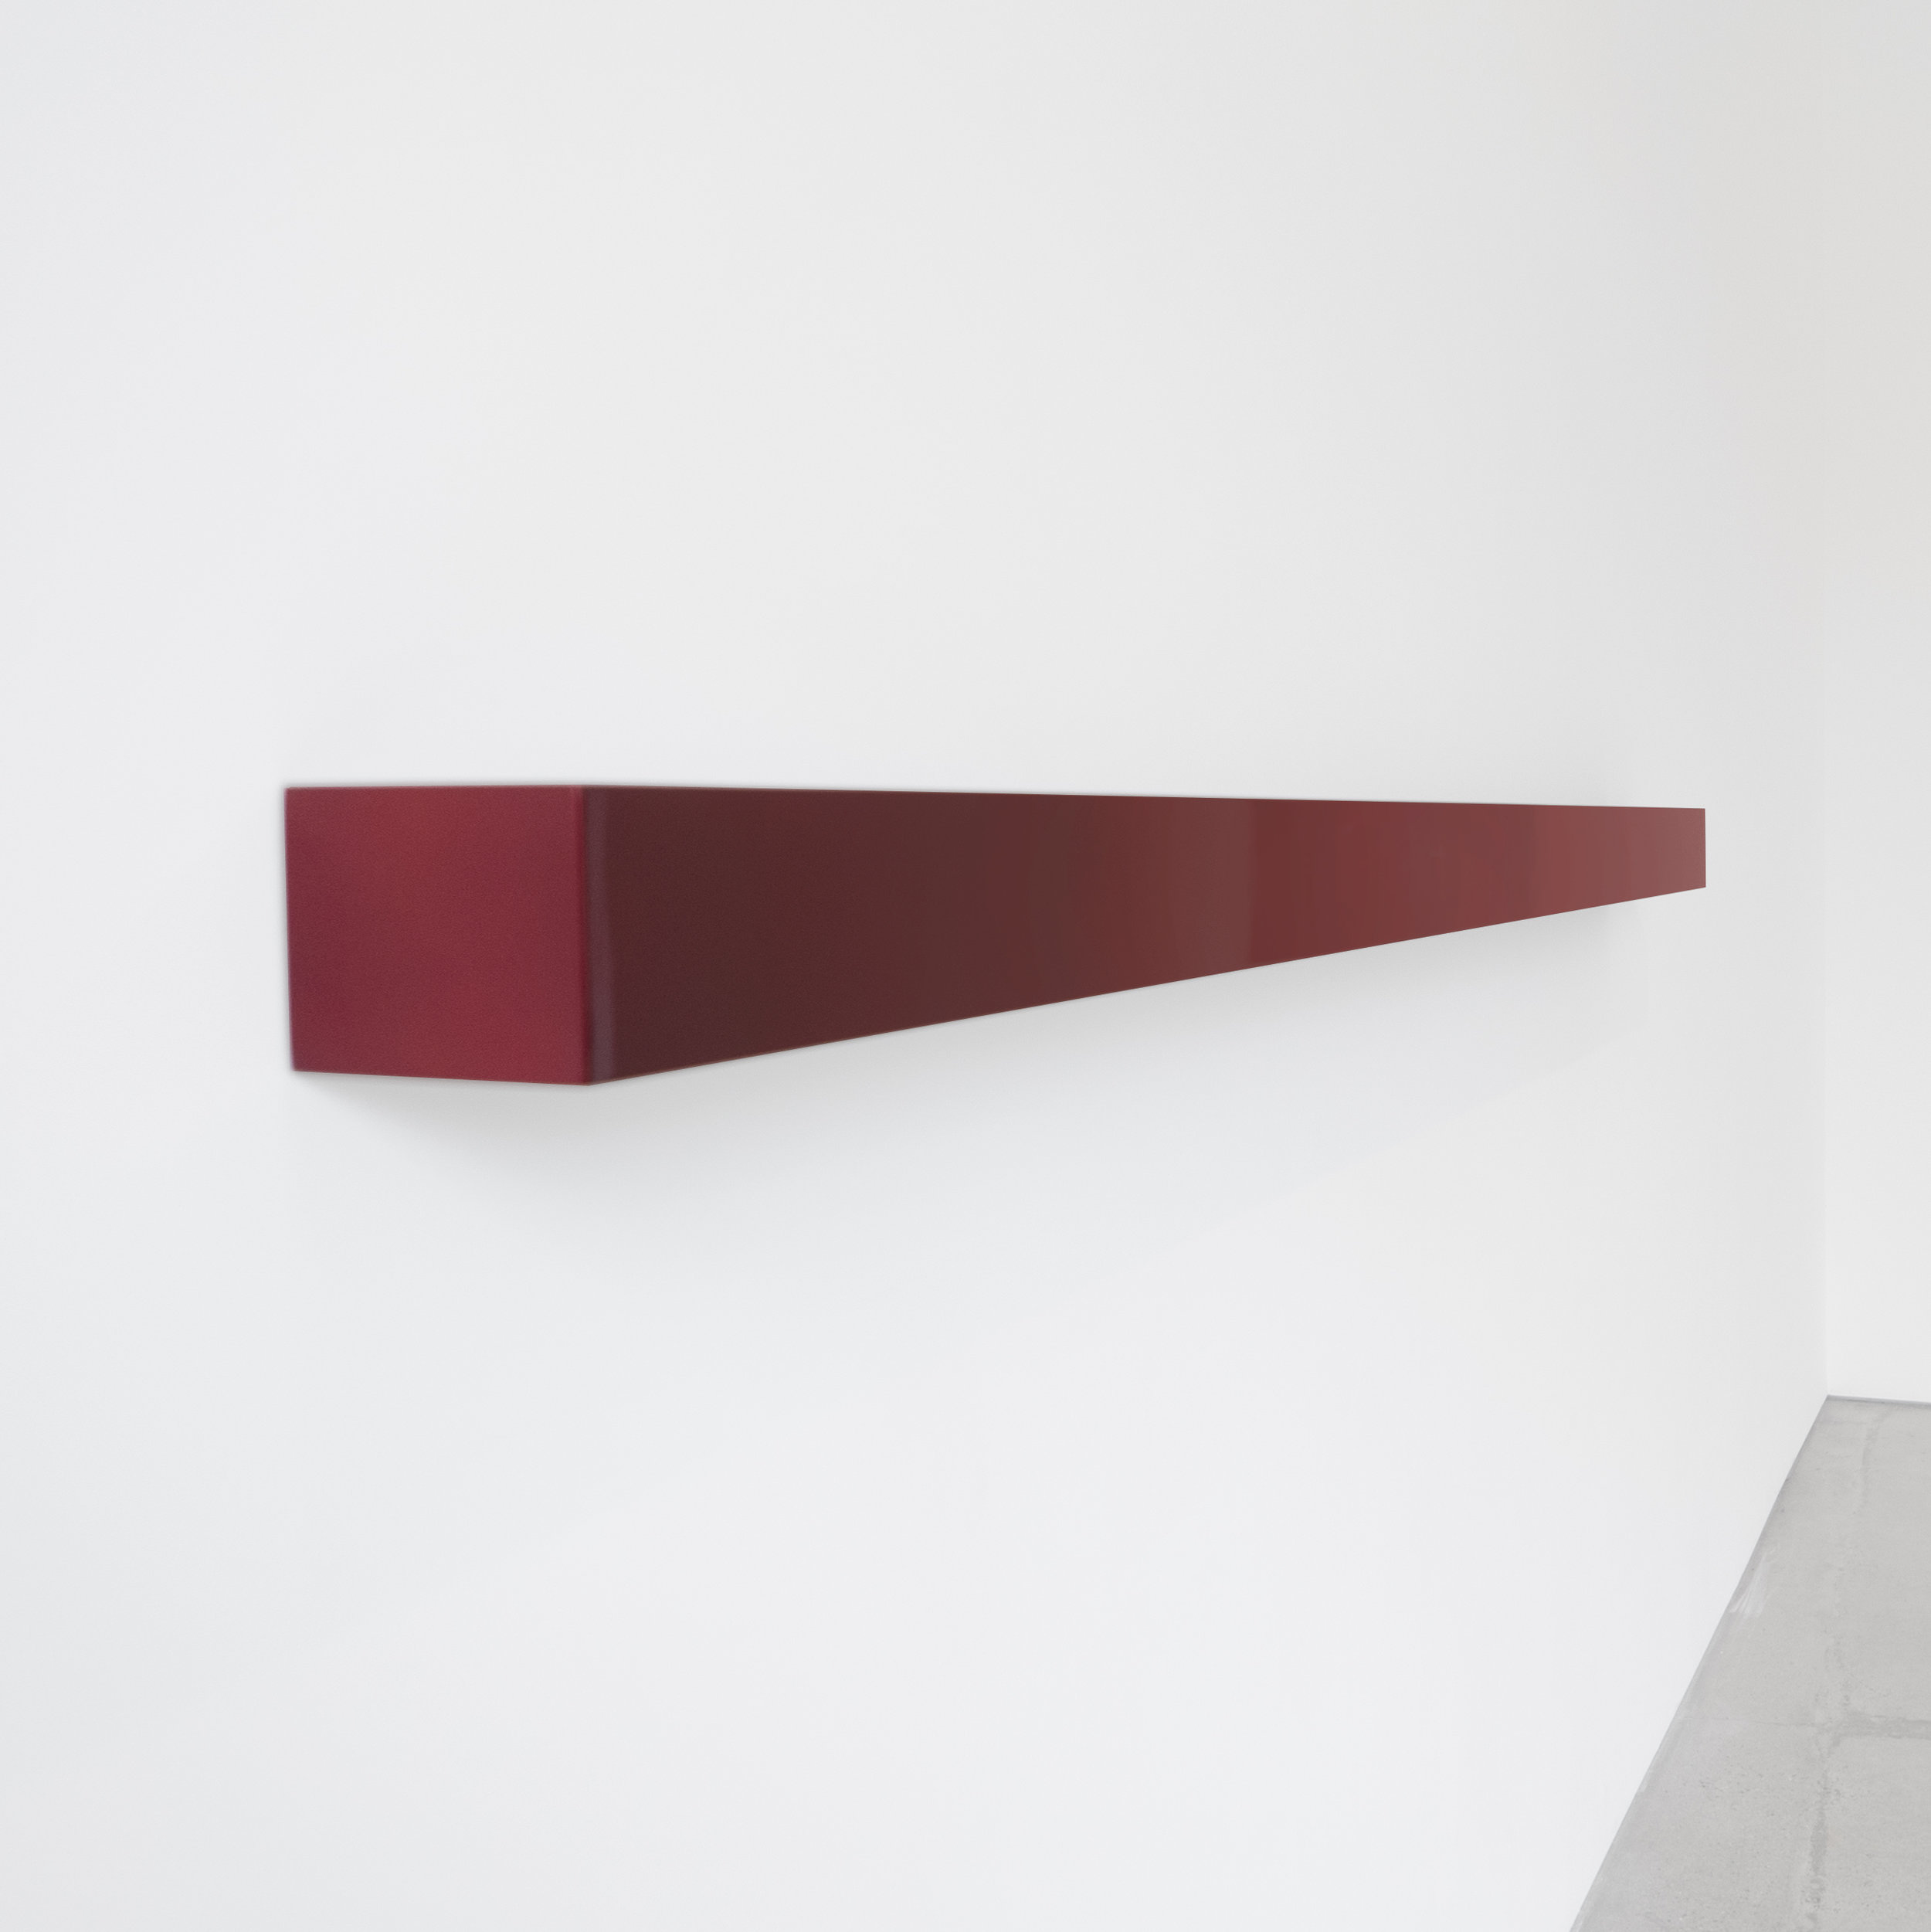 John McCracken Kanoon 2000 Lacquer, Polyester Resin, Fiberglass on Plywood  4.5 x 96 x 5.5 inches